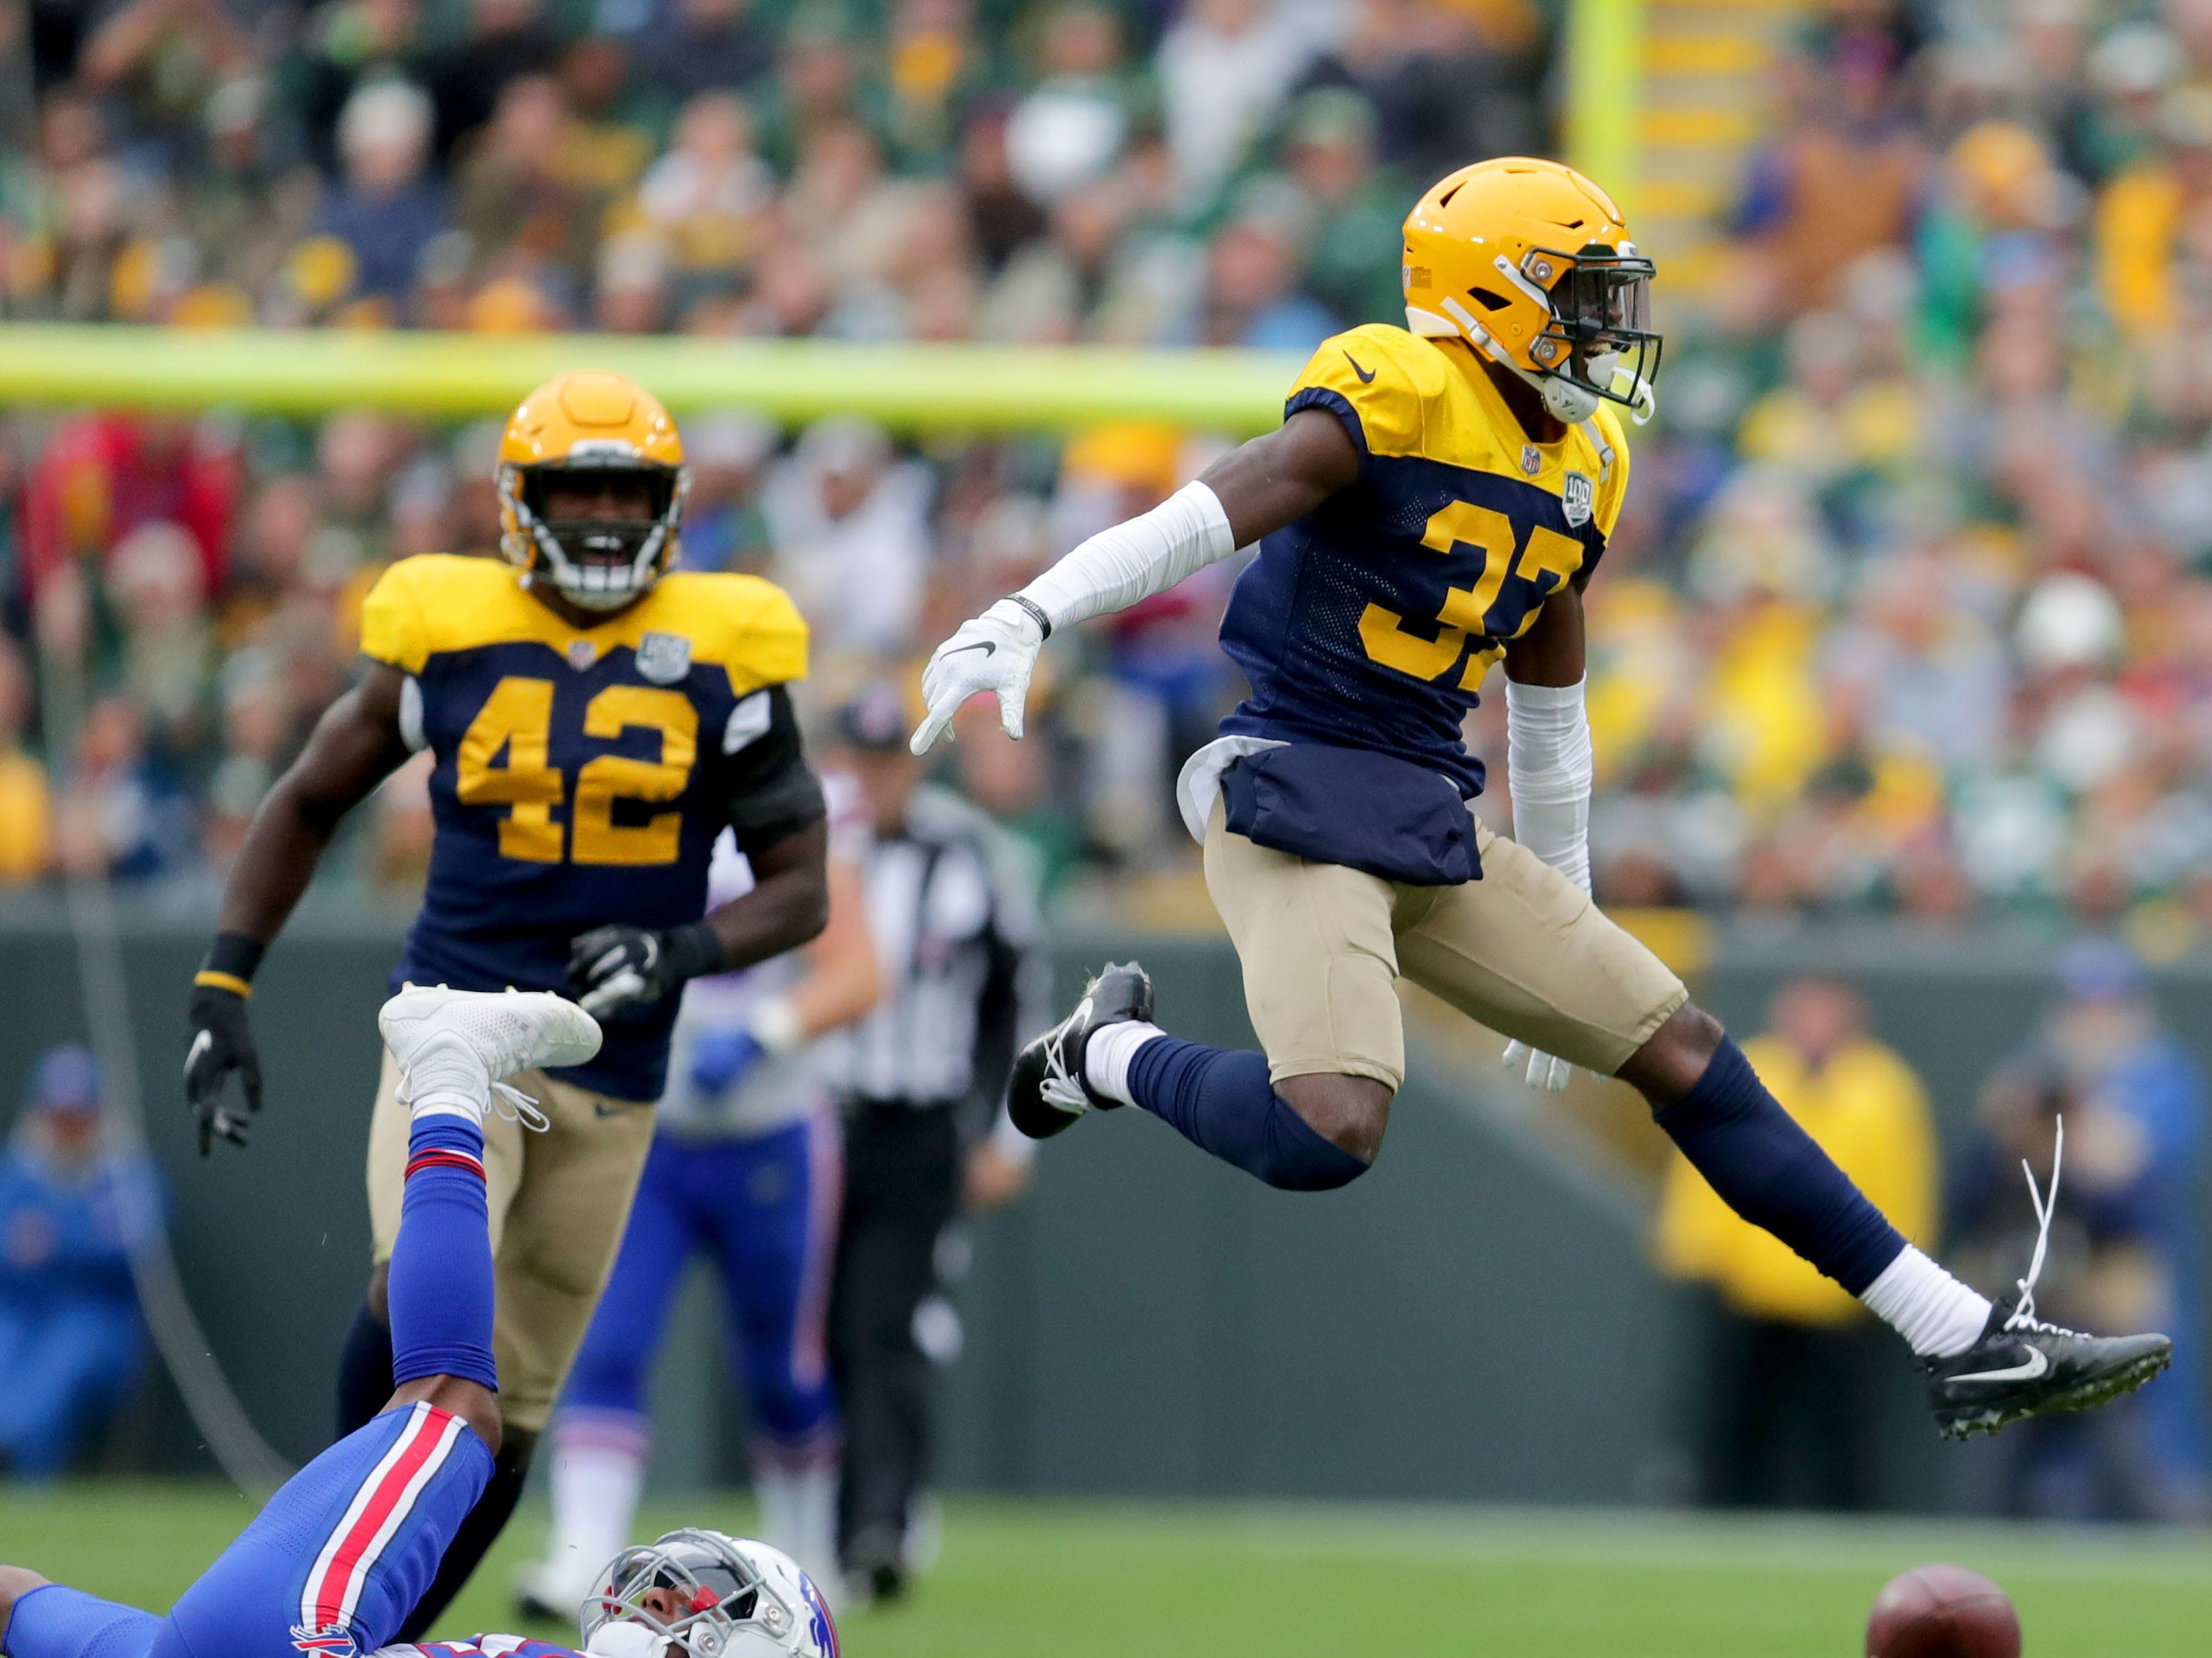 Green Bay Packers cornerback Josh Jackson (37) celebrates after breaking up a pass during the 4th quarter of the Green Bay Packers 22-0 win against the Buffalo Bills at Lambeau Field in Green Bay, Wis. on Sunday, September 30, 2018. Mike De Sisti /USA TODAY NETWORK-Wisconsin